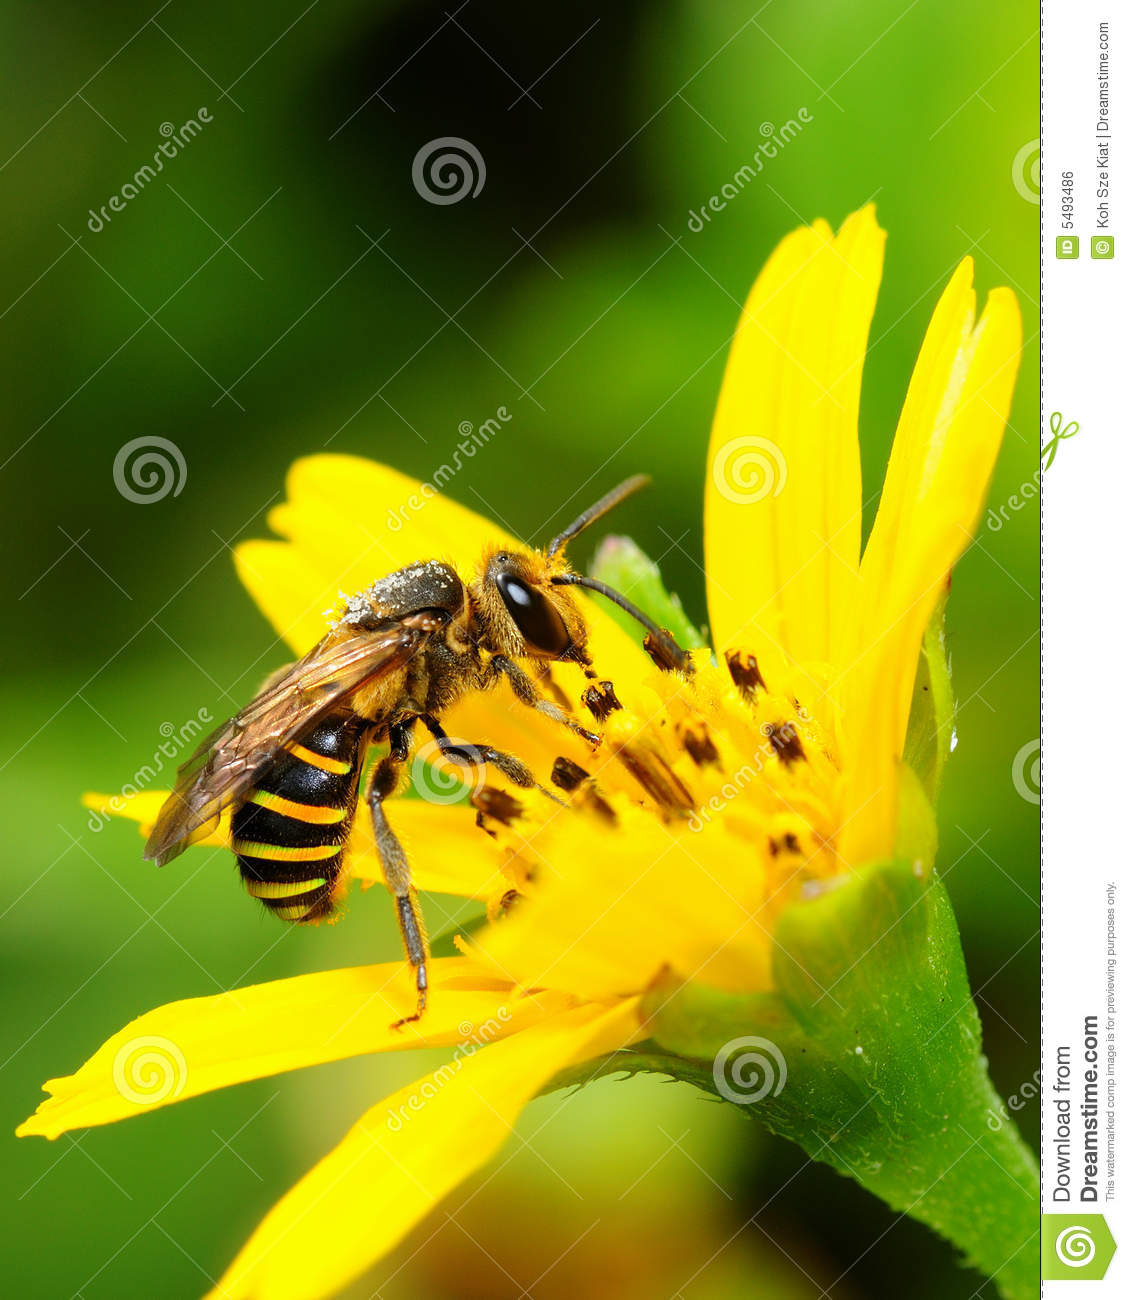 Bee At Work Collecting Nectar Royalty Free Stock Image.